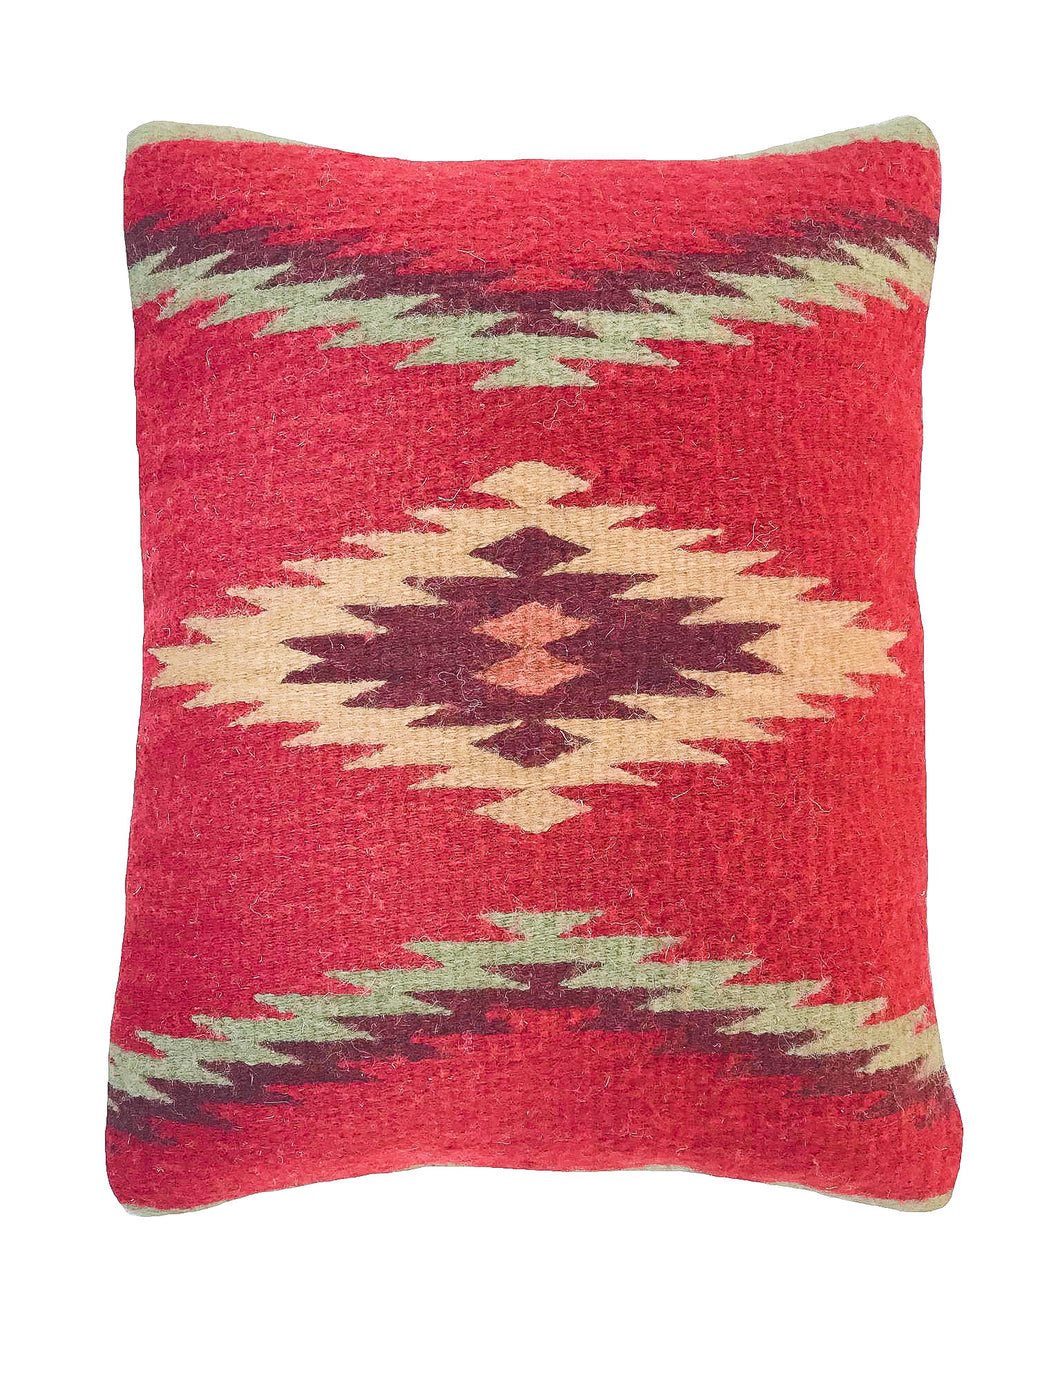 Handwven Zapotec Indian Pillow - Walk in Beauty Wool Oaxacan Textile